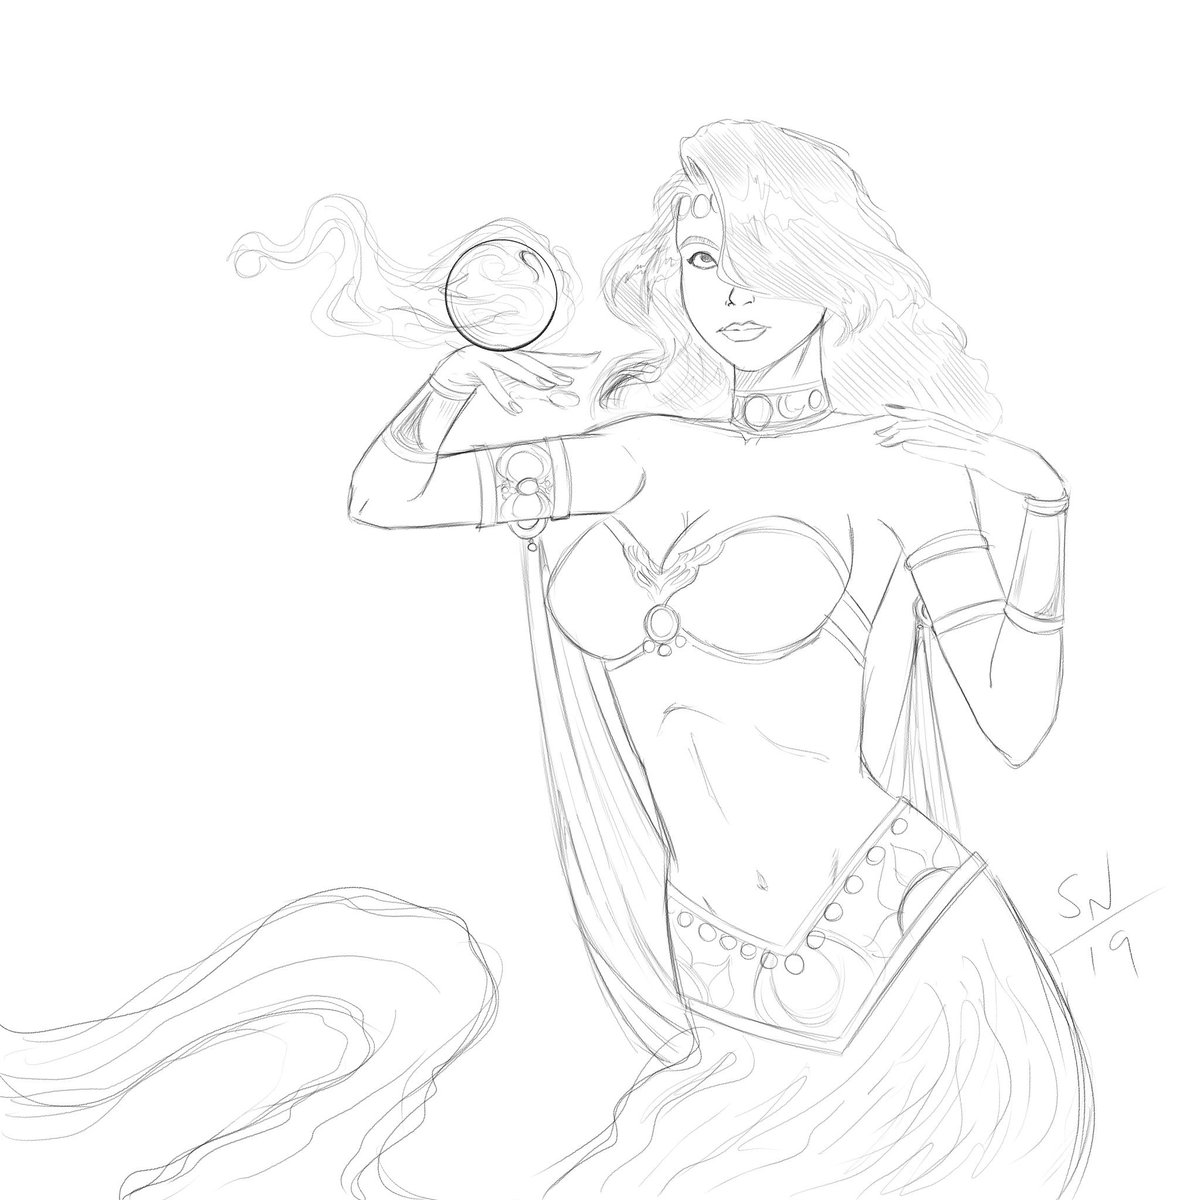 A Genie, Gifted in Premonitions  #art #illustration #comics #comicartist #genie  #fantasy #arabiannights #pinup #cosplay #bellacostume #bellydance #makingcomics #makecomics<br>http://pic.twitter.com/TJtDzSIOn5